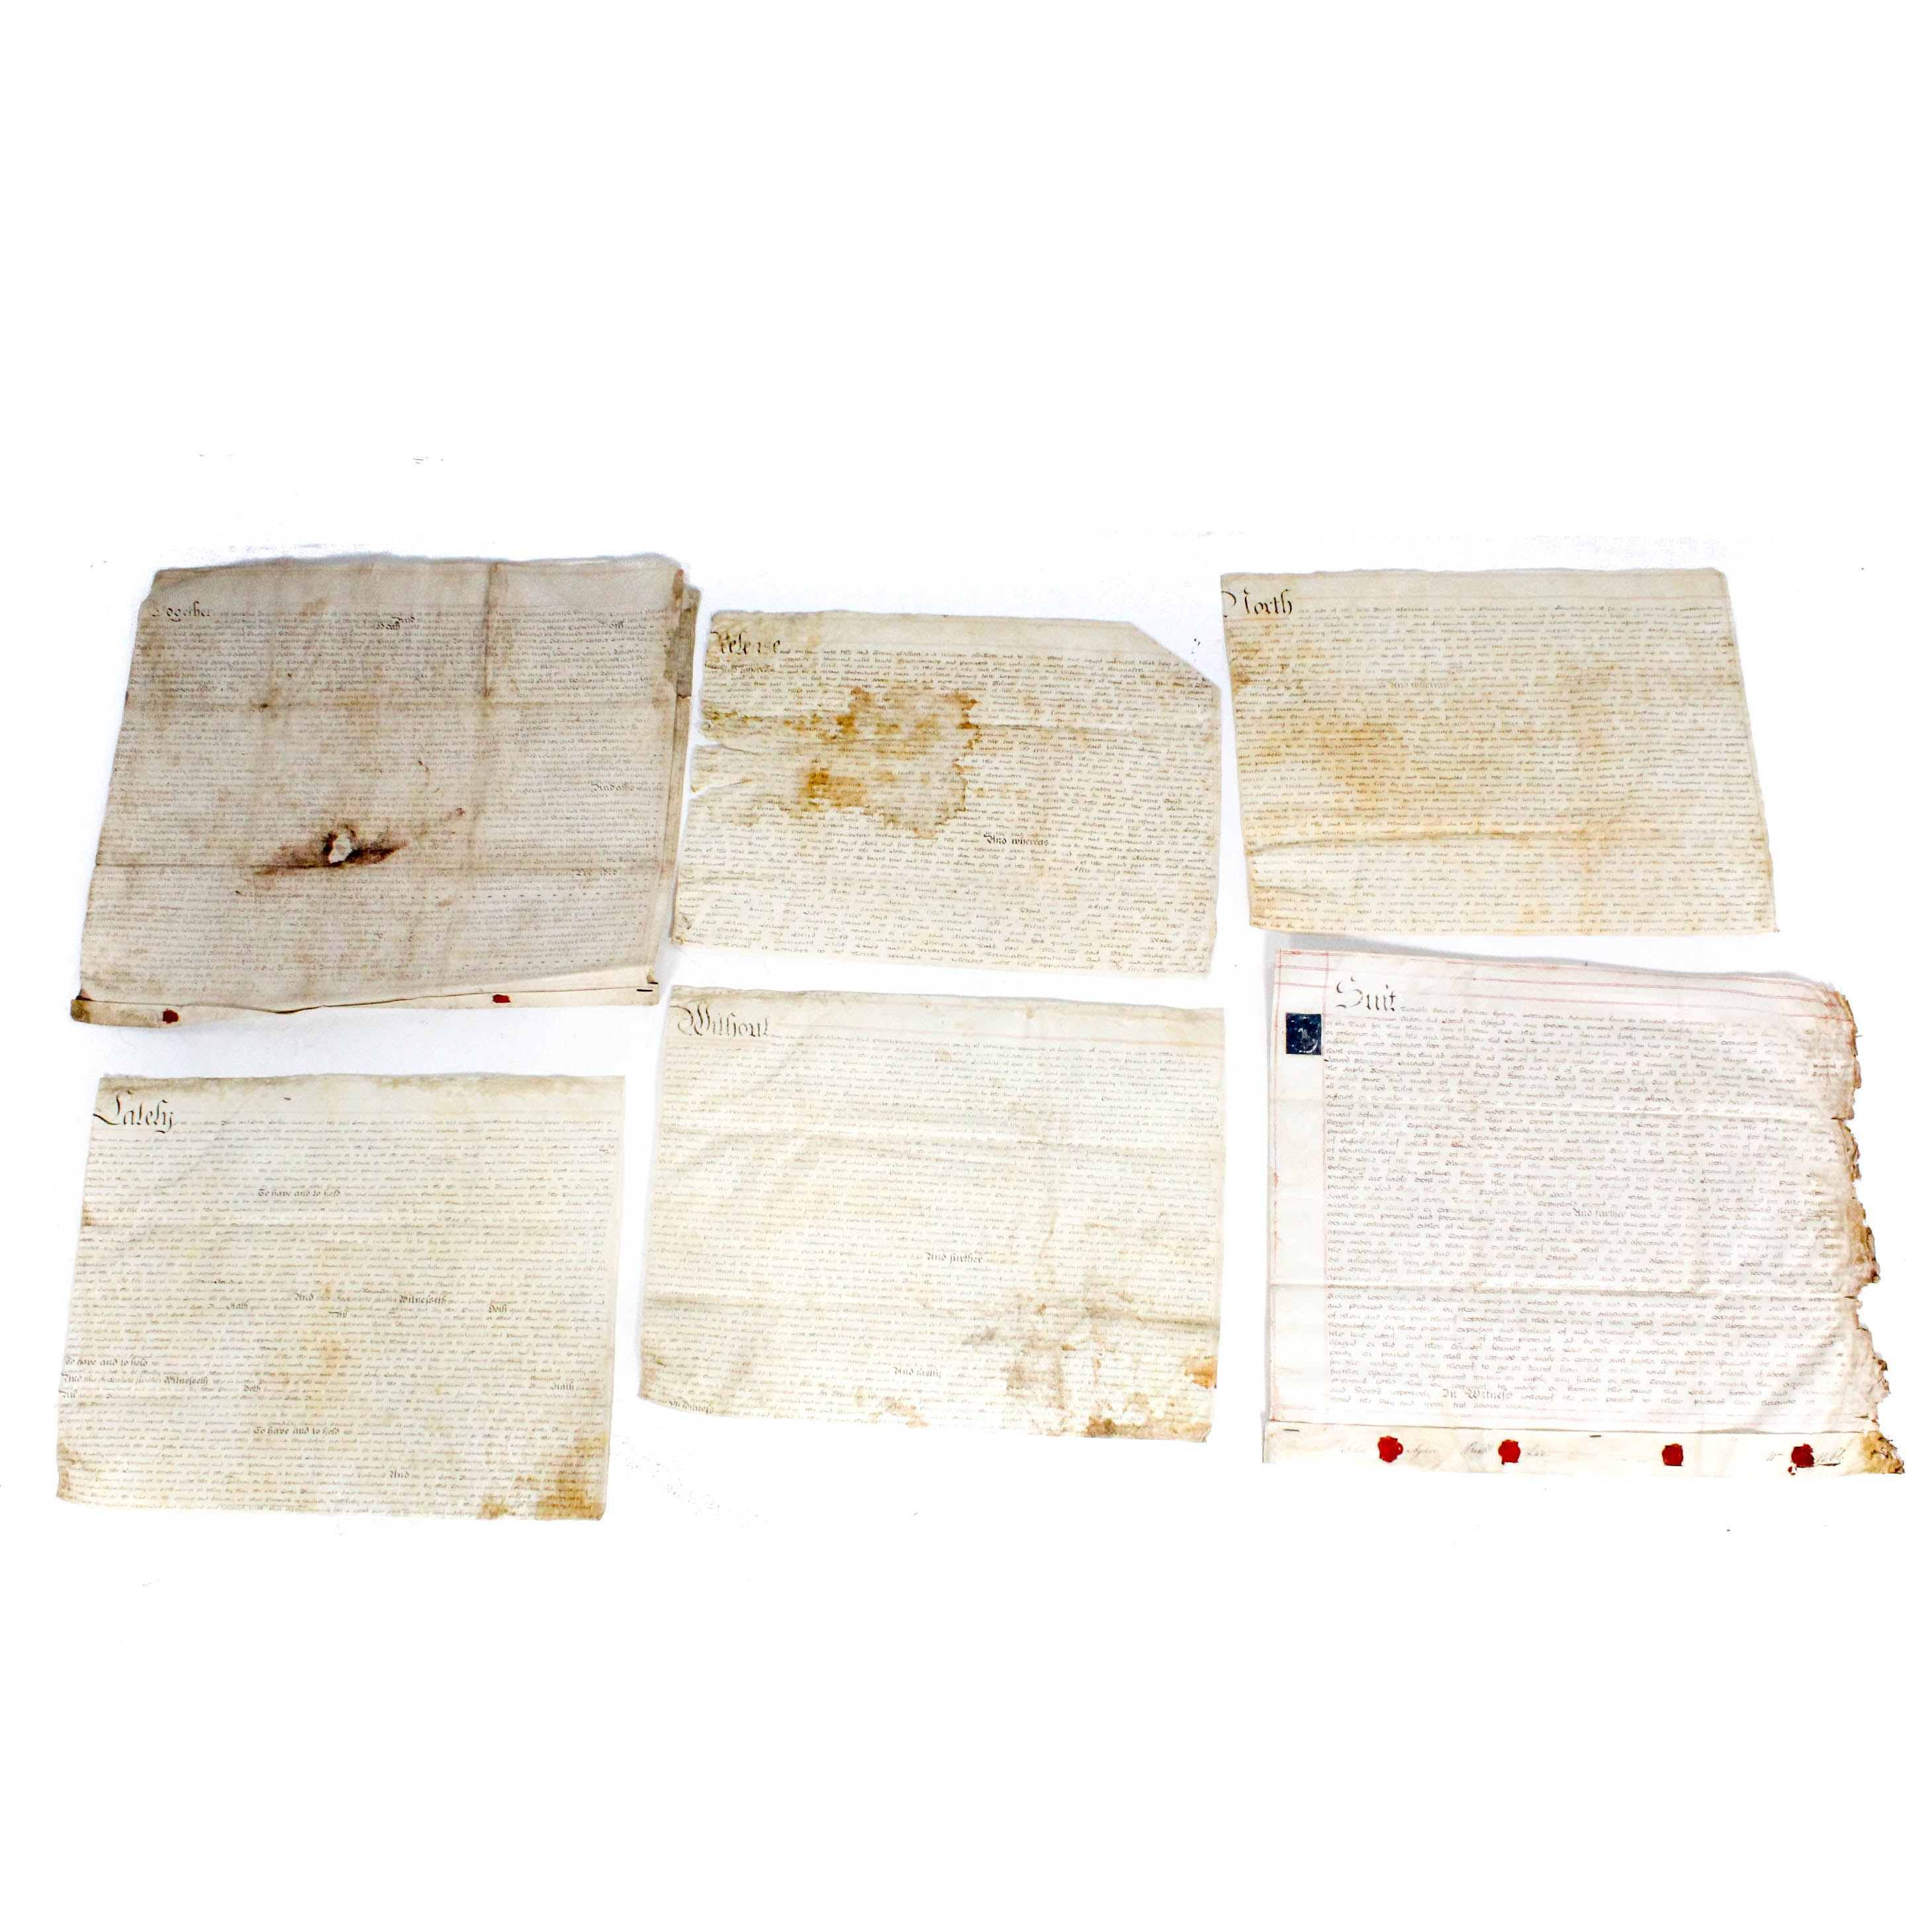 1801 Contracts on Vellum